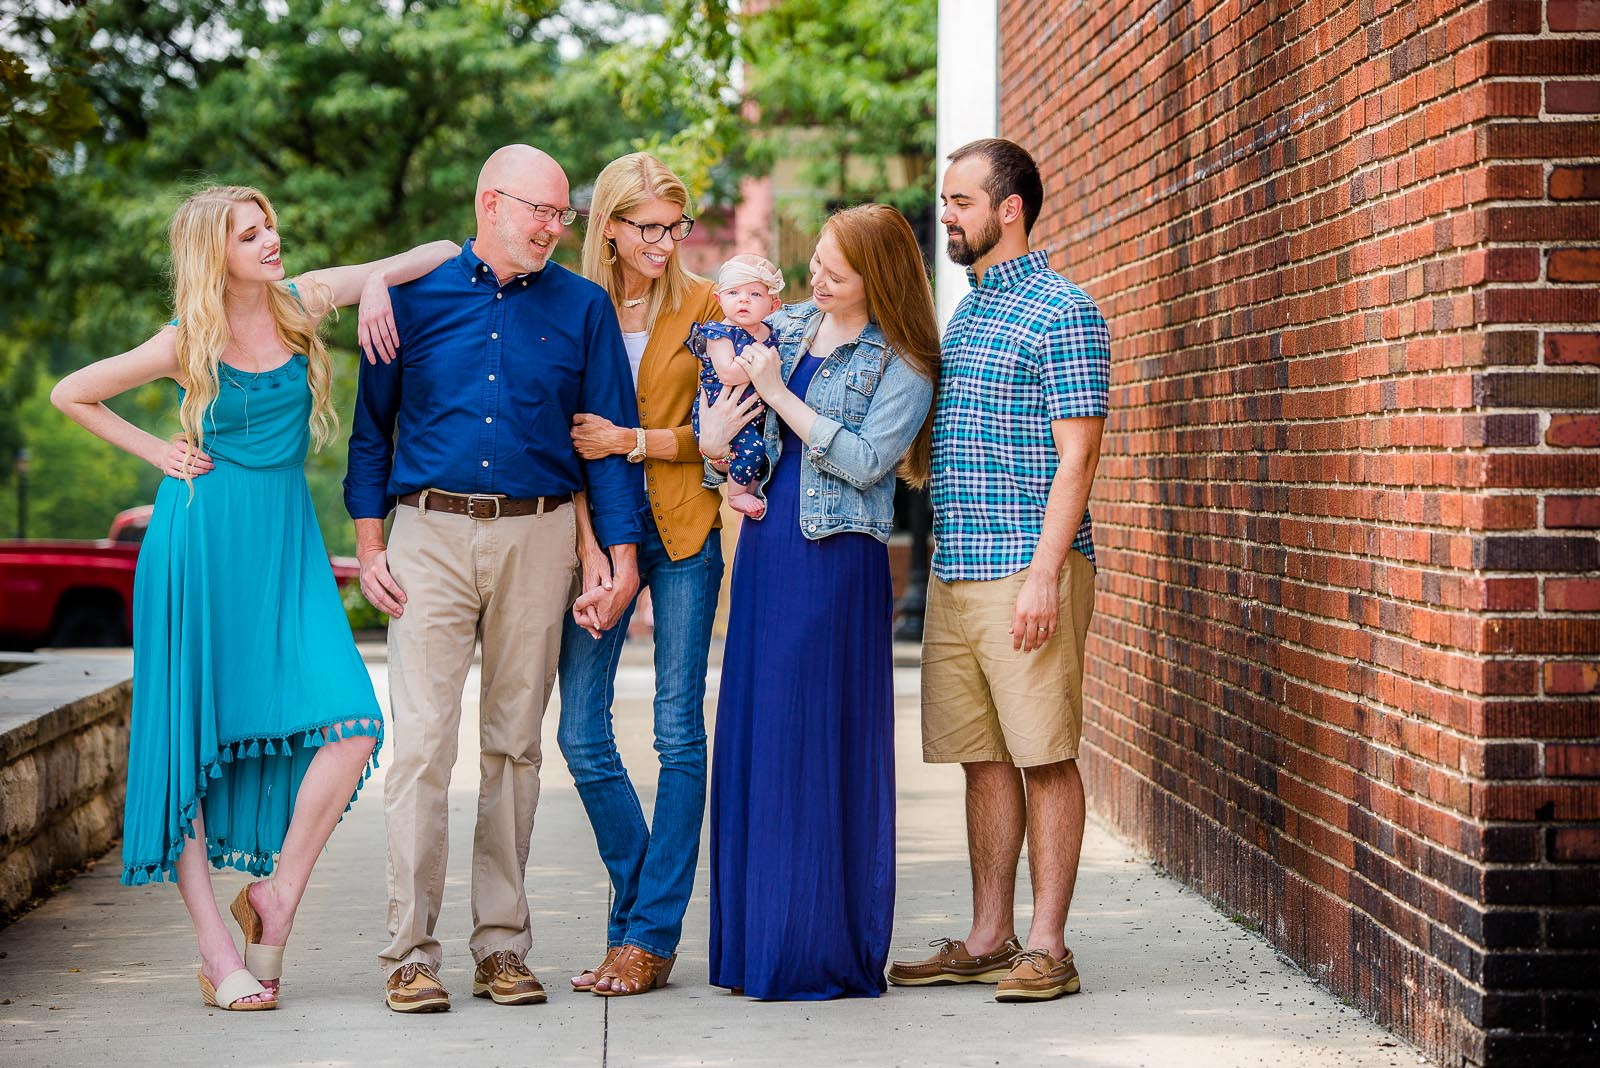 Eric_and_Christy_Photography_Blog_Cannon_Family-3